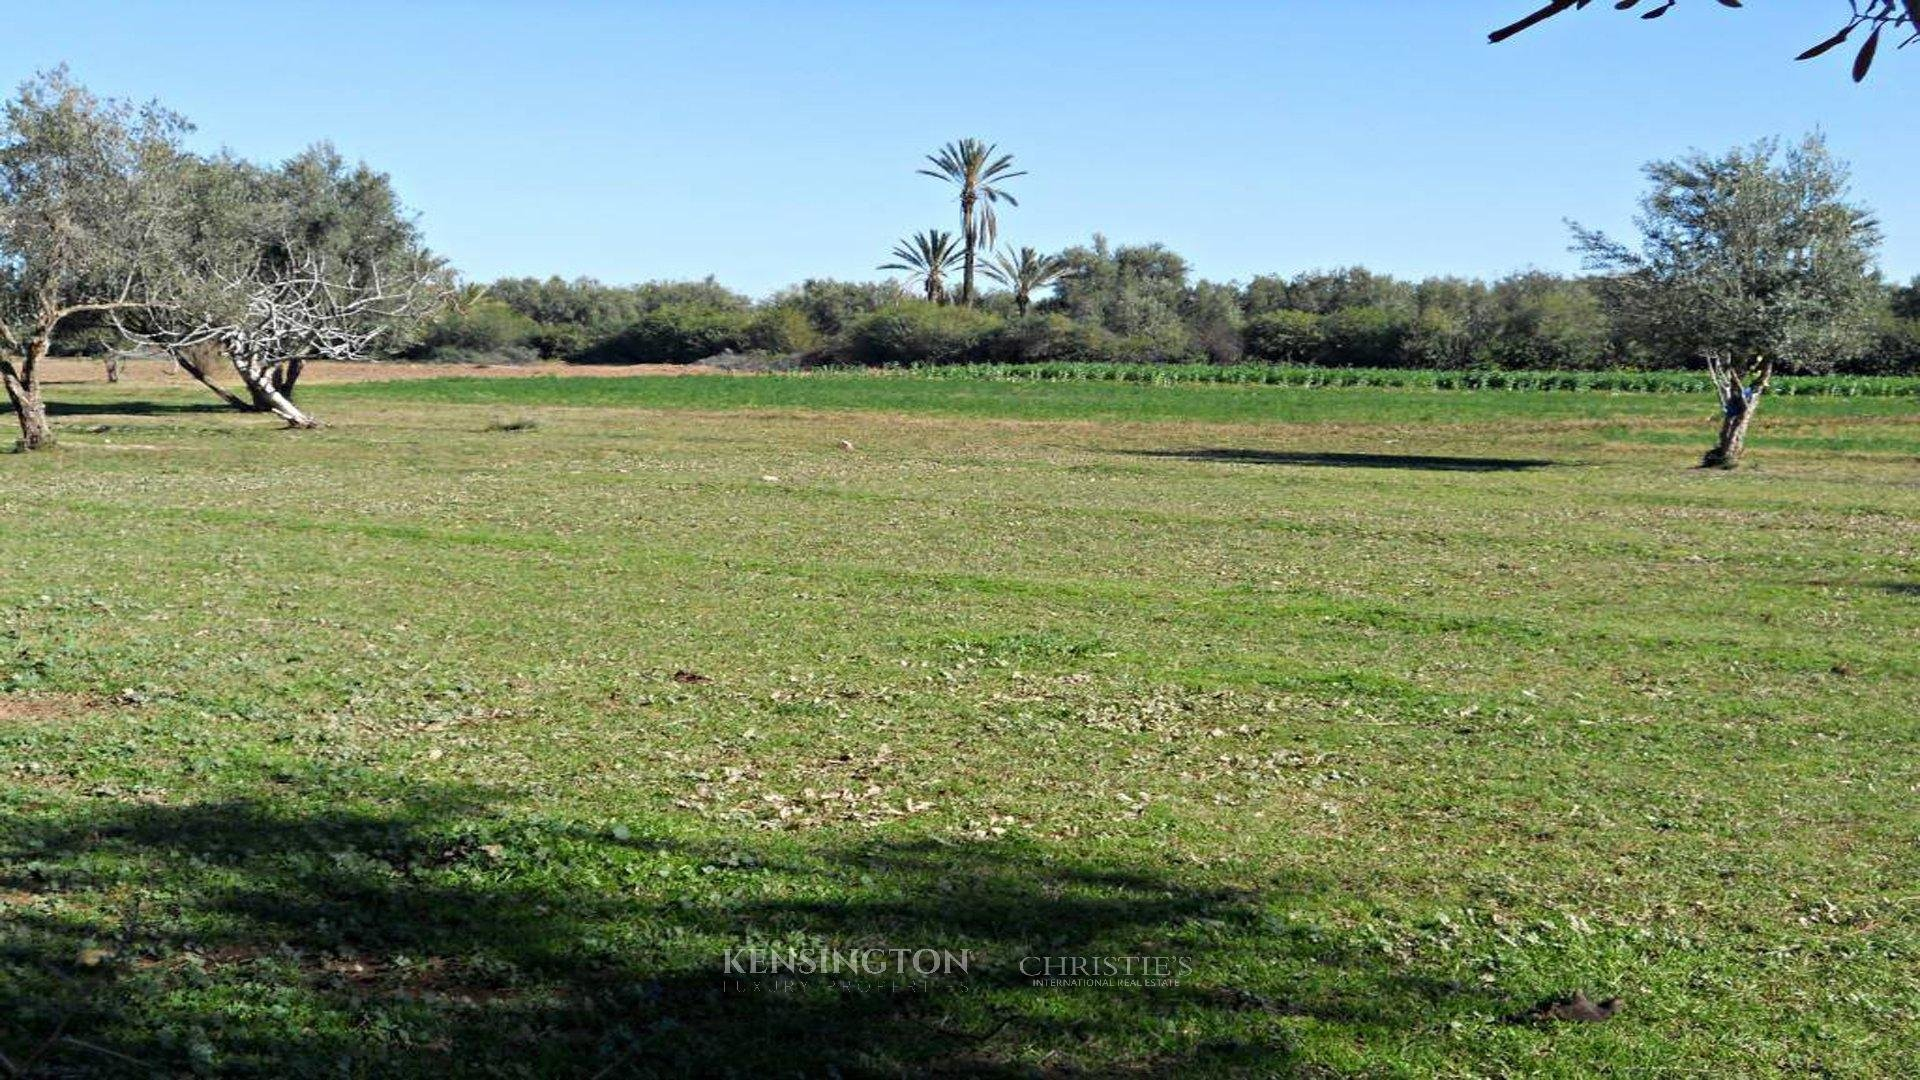 KPPM00805: Land for Sale 5 km from Al Maaden Building land Marrakech Morocco